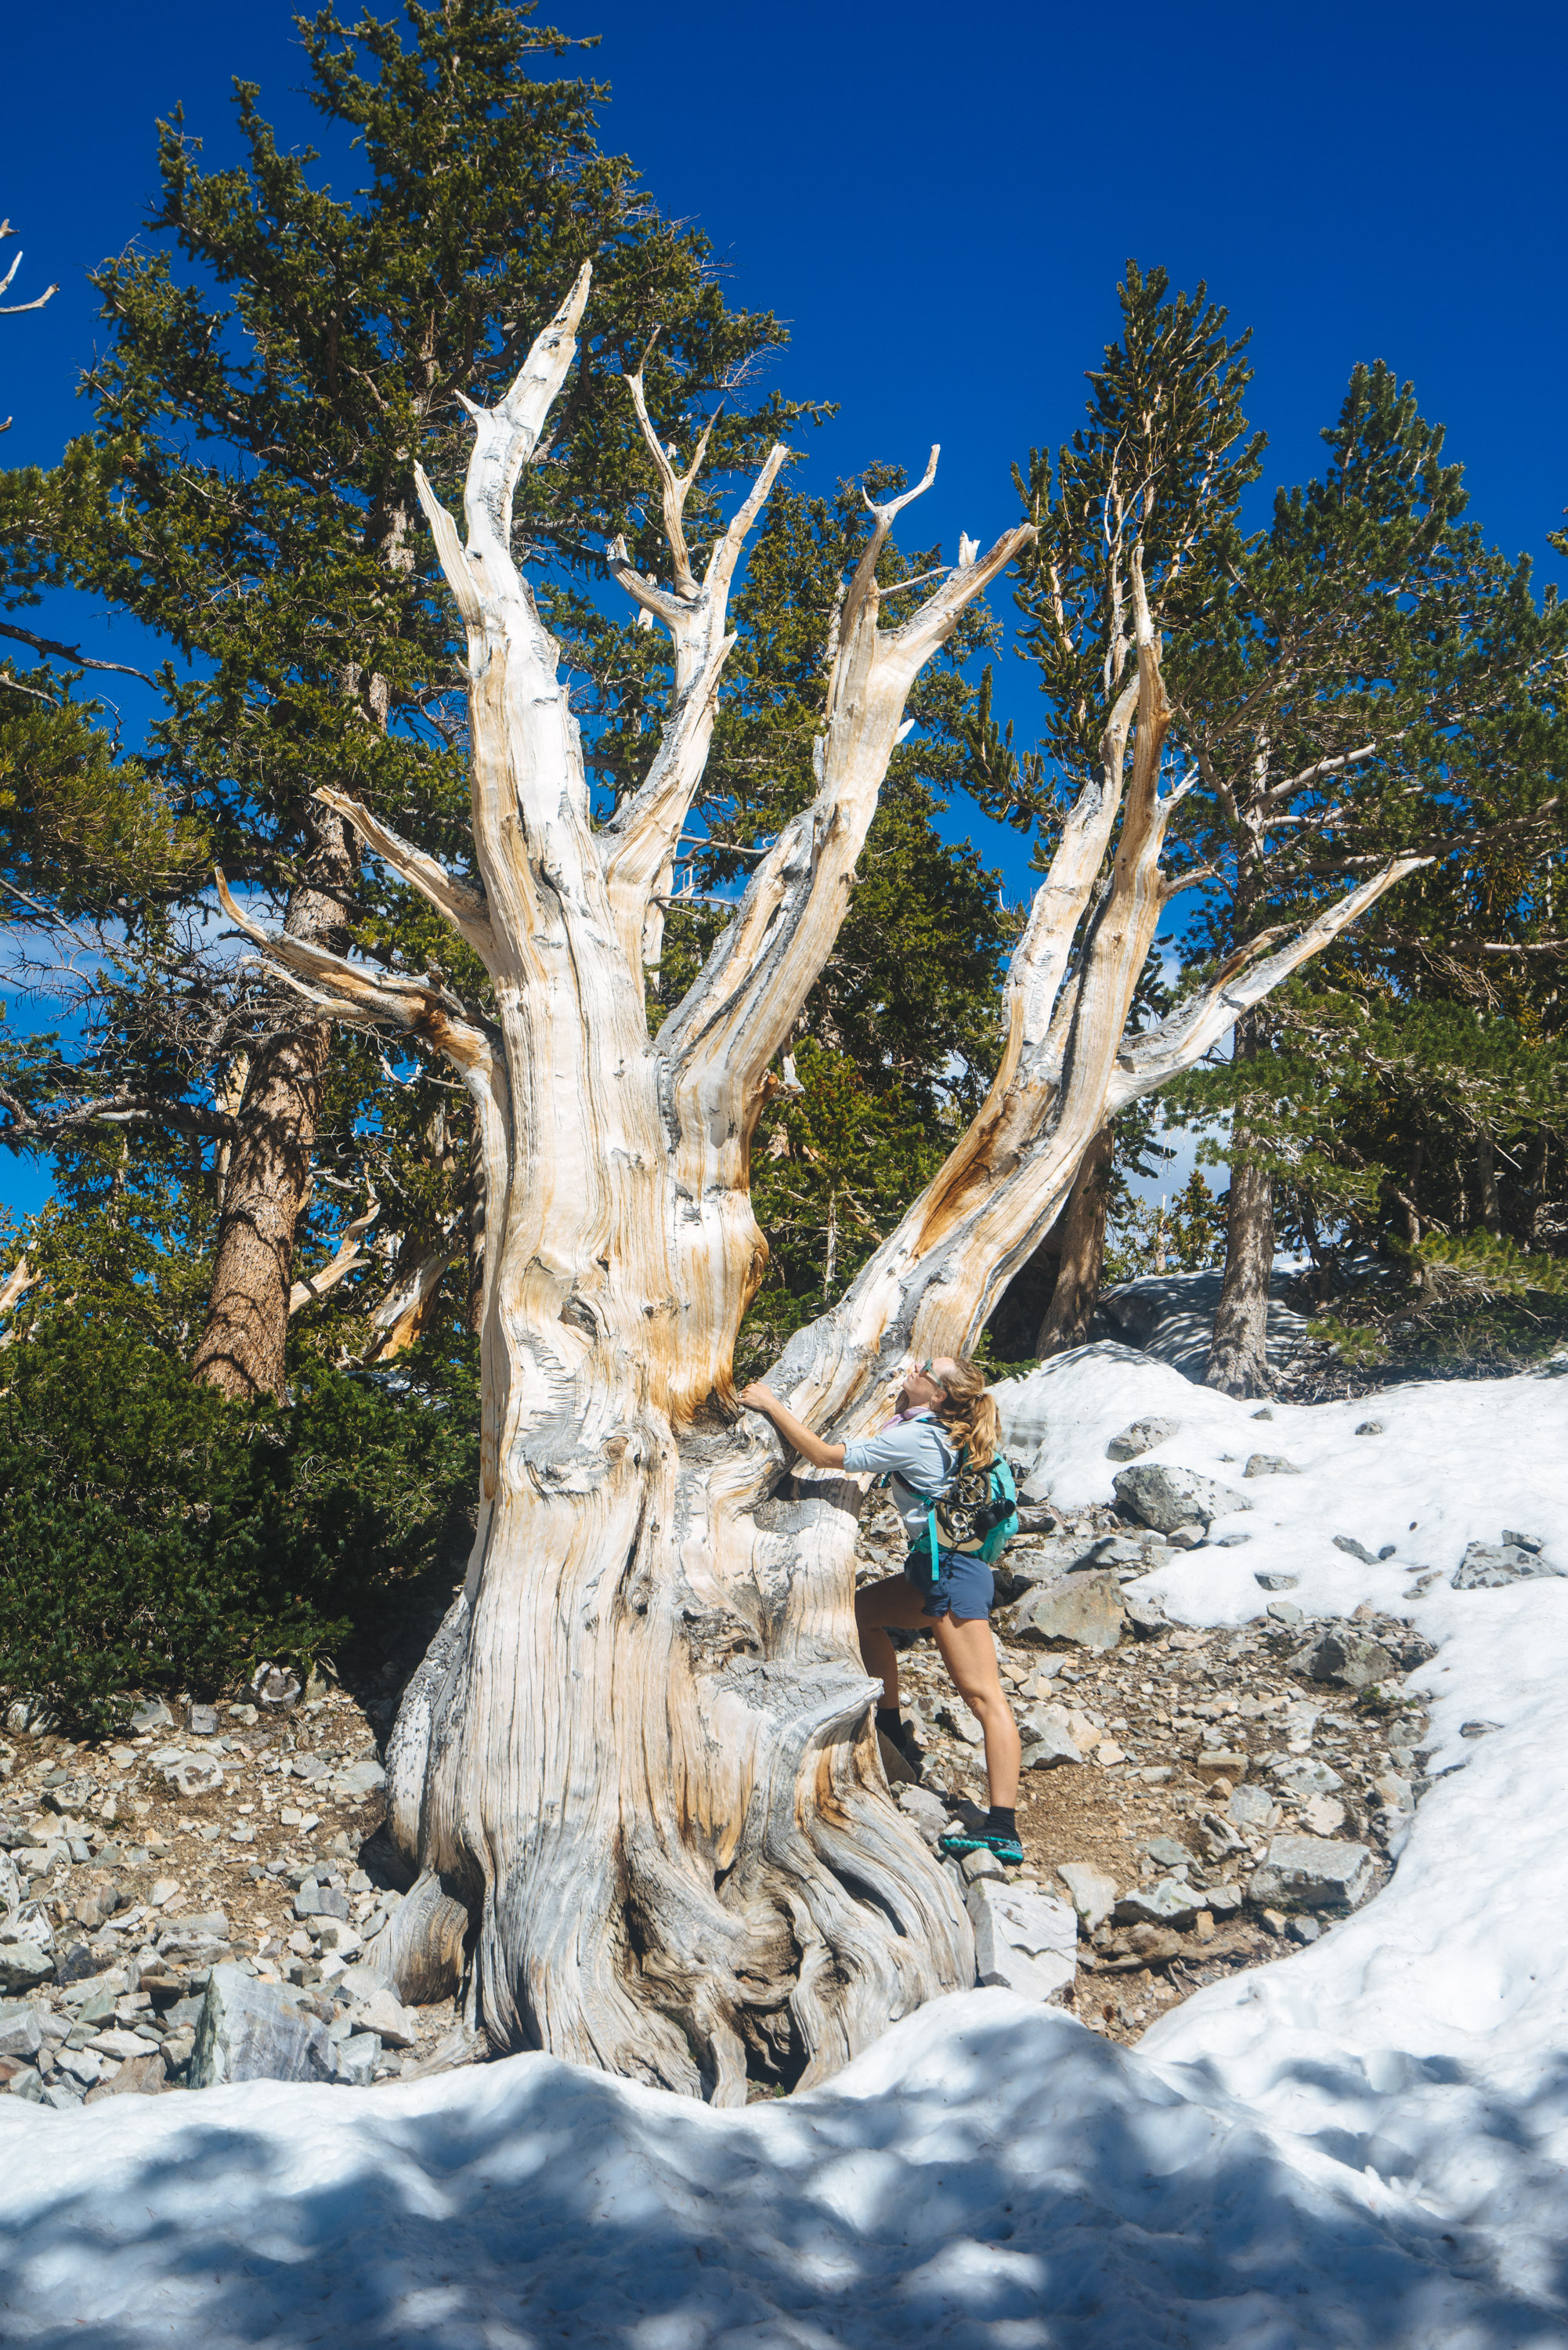 Bristlecone Pine, Great Basin NP, Nevada while on a training hike in the snow